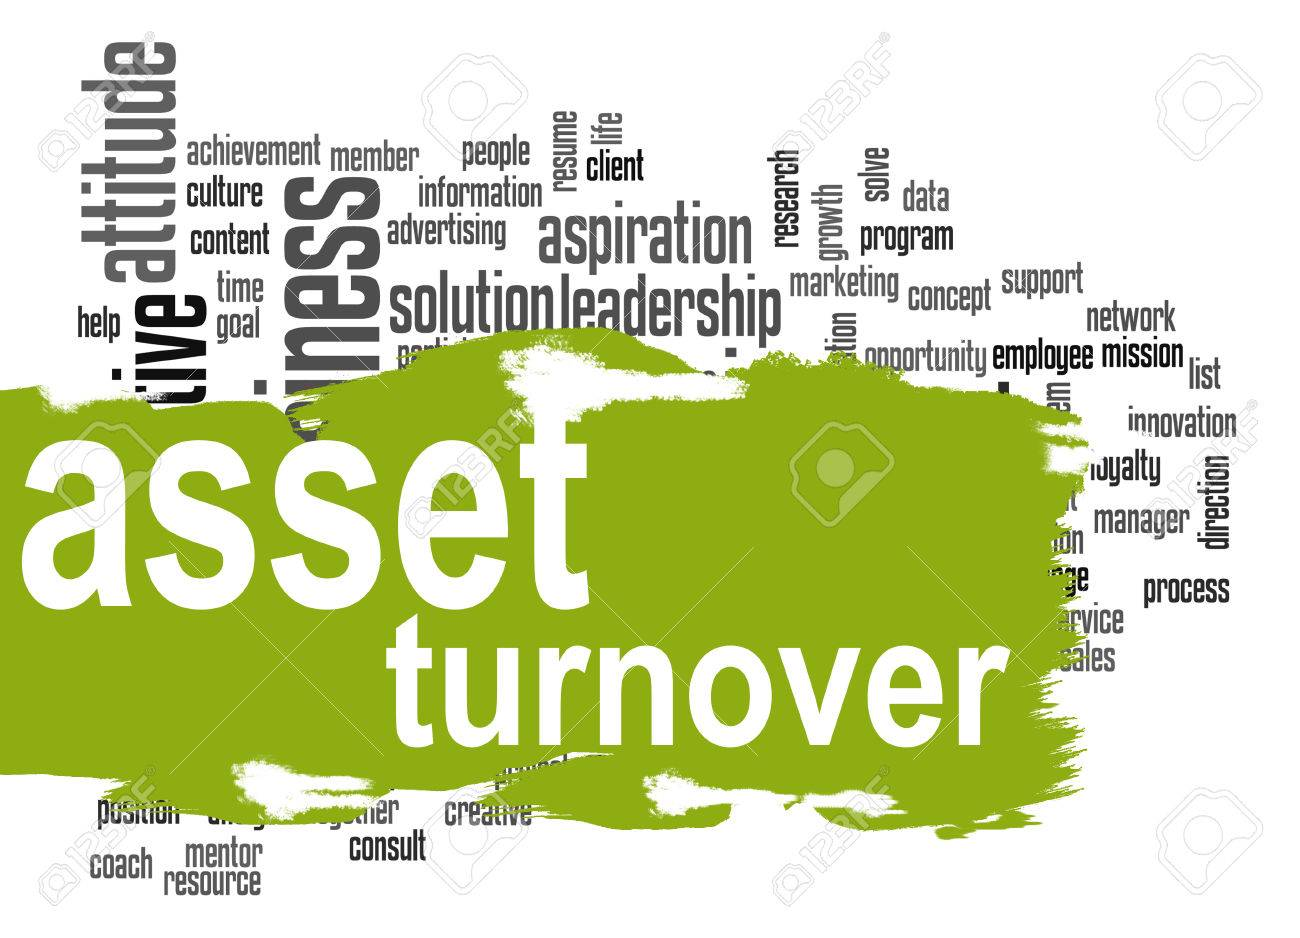 asset turnover word cloud with green banner image with hi res rendered artwork that could